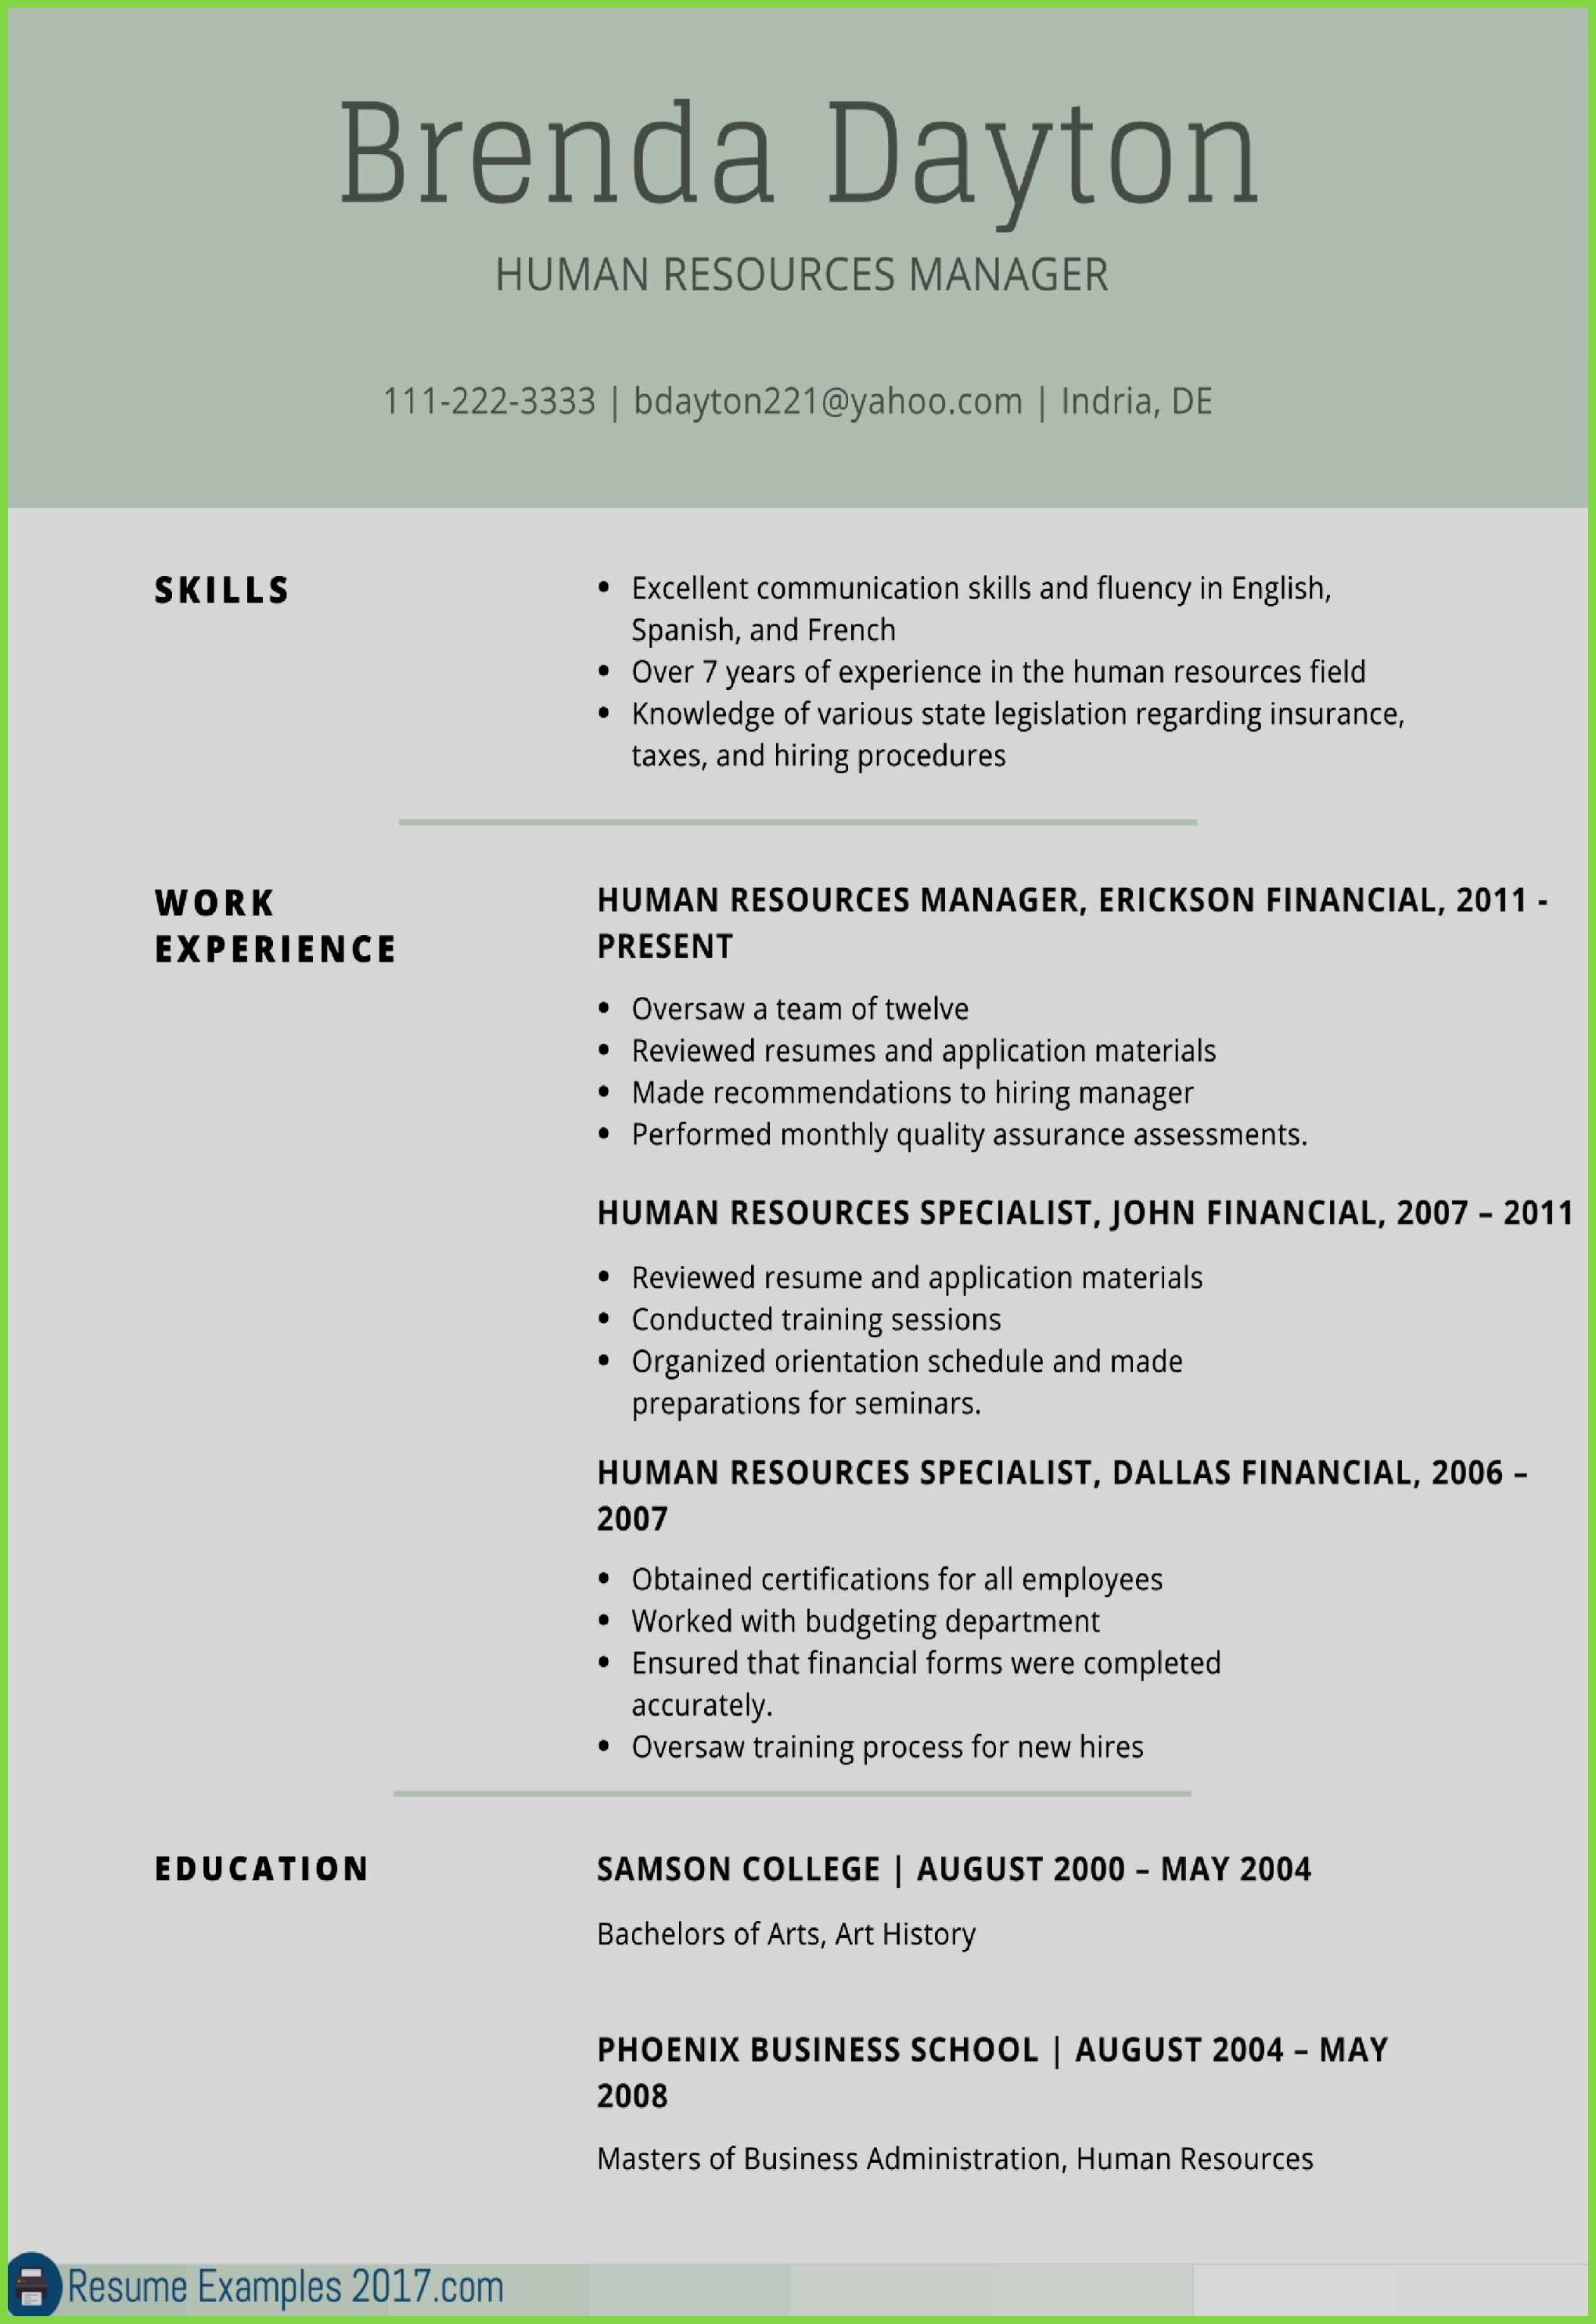 Hr Resume Template - Hr Resume Template 21 Hr Resume Sample Occupylondonsos